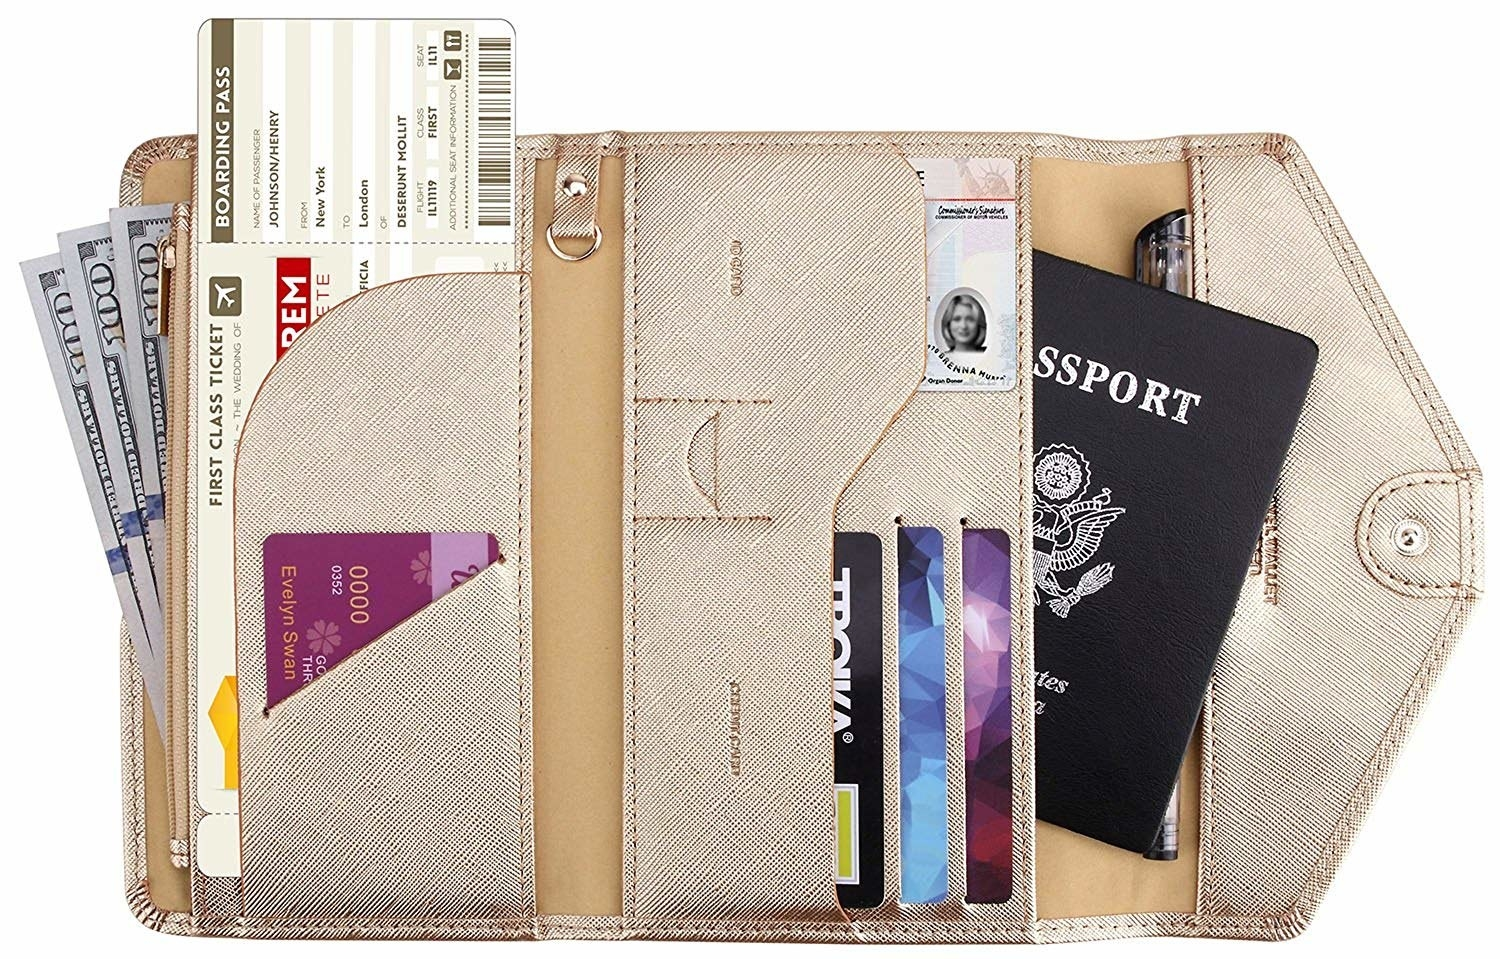 The gold metallic wallet open to show what it holds